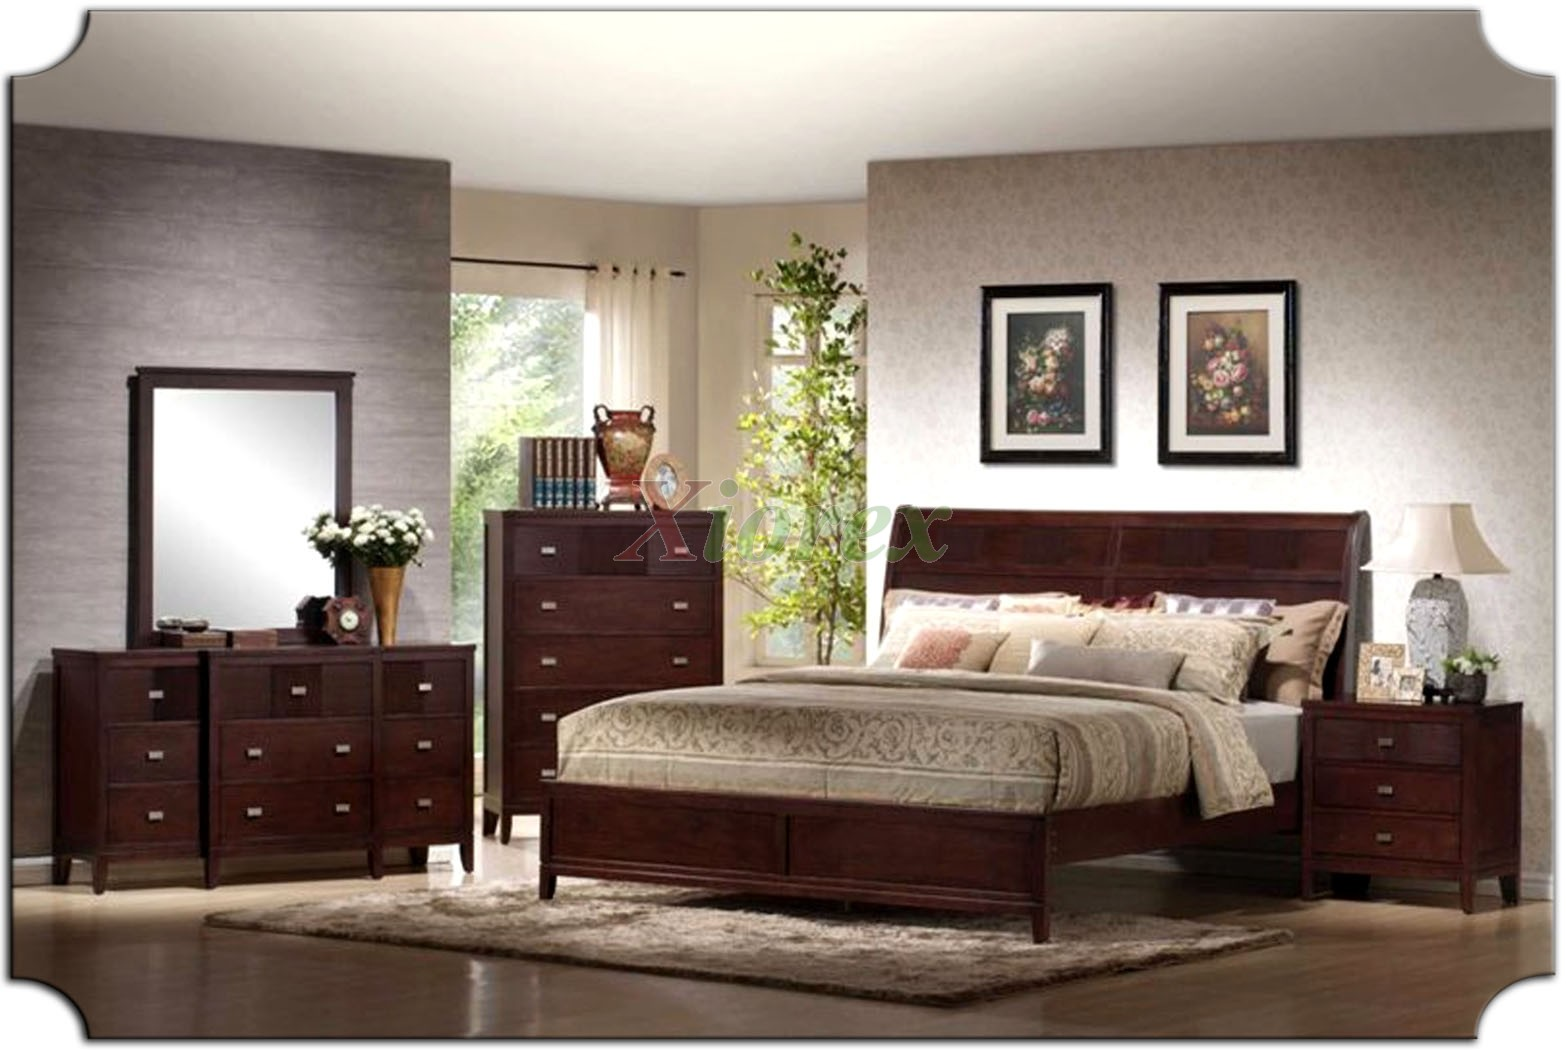 platform bedroom furniture set with curved headboard beds 167 | xiorex